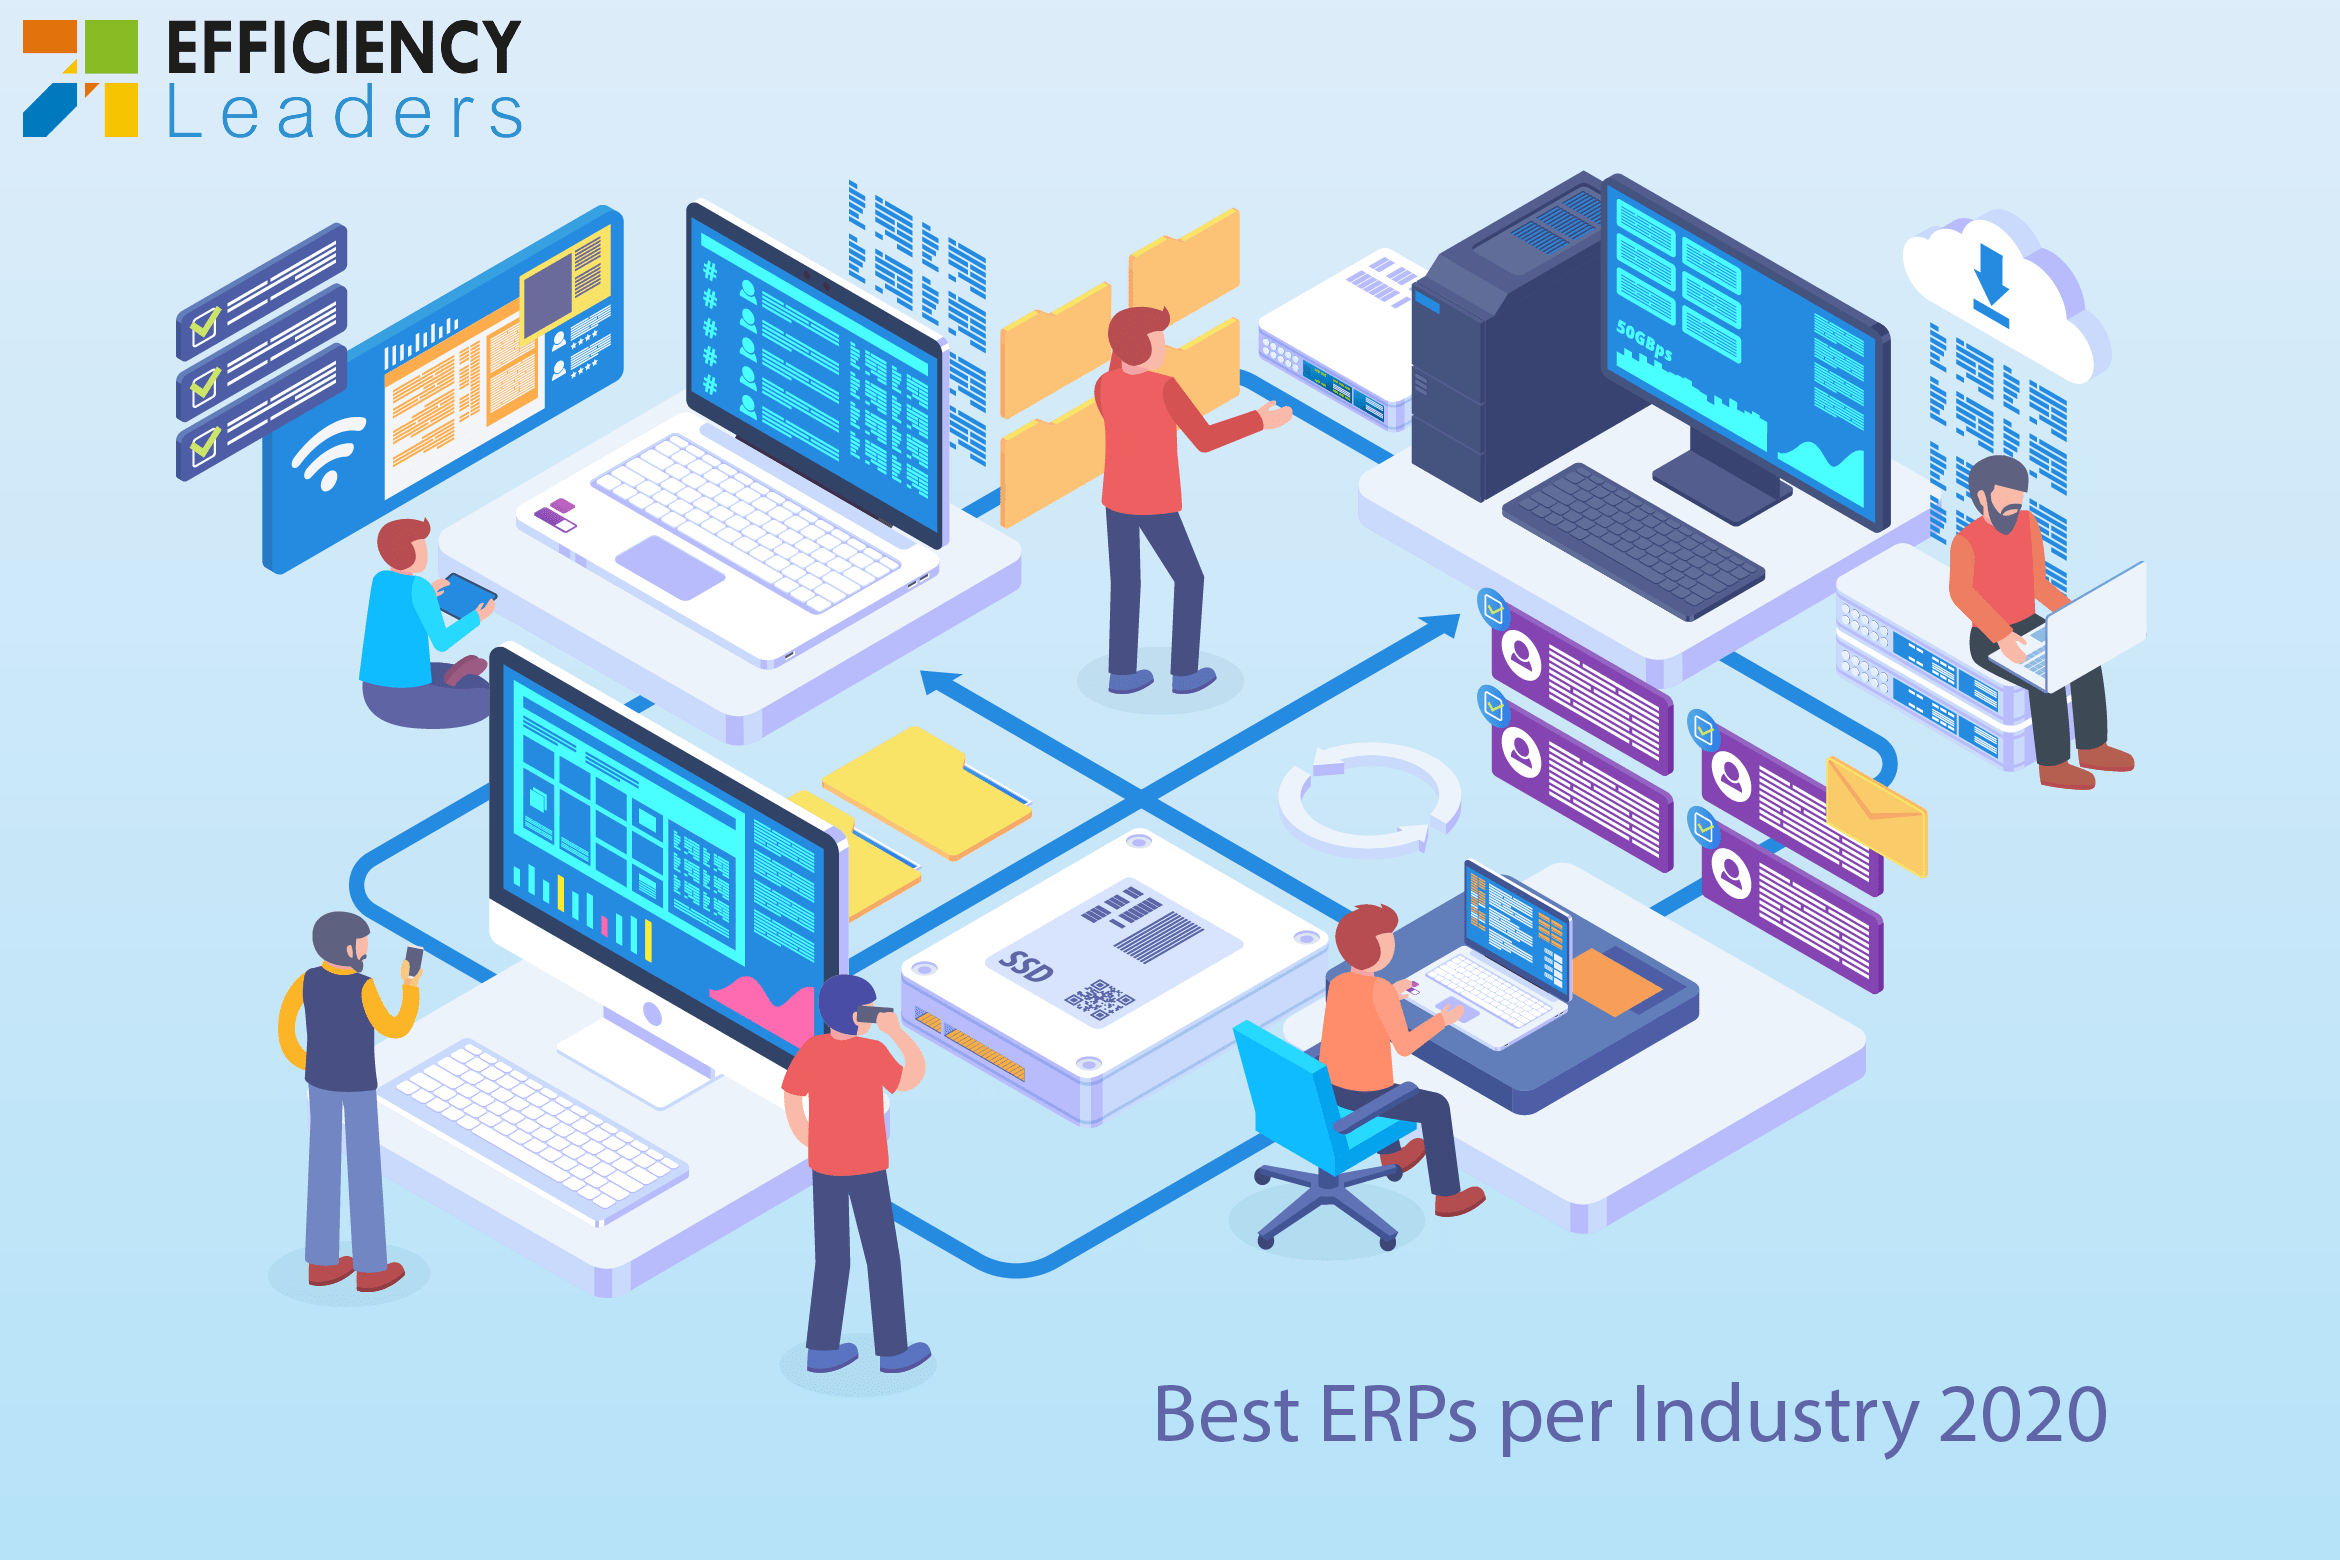 Best ERP Per Industry In 2020